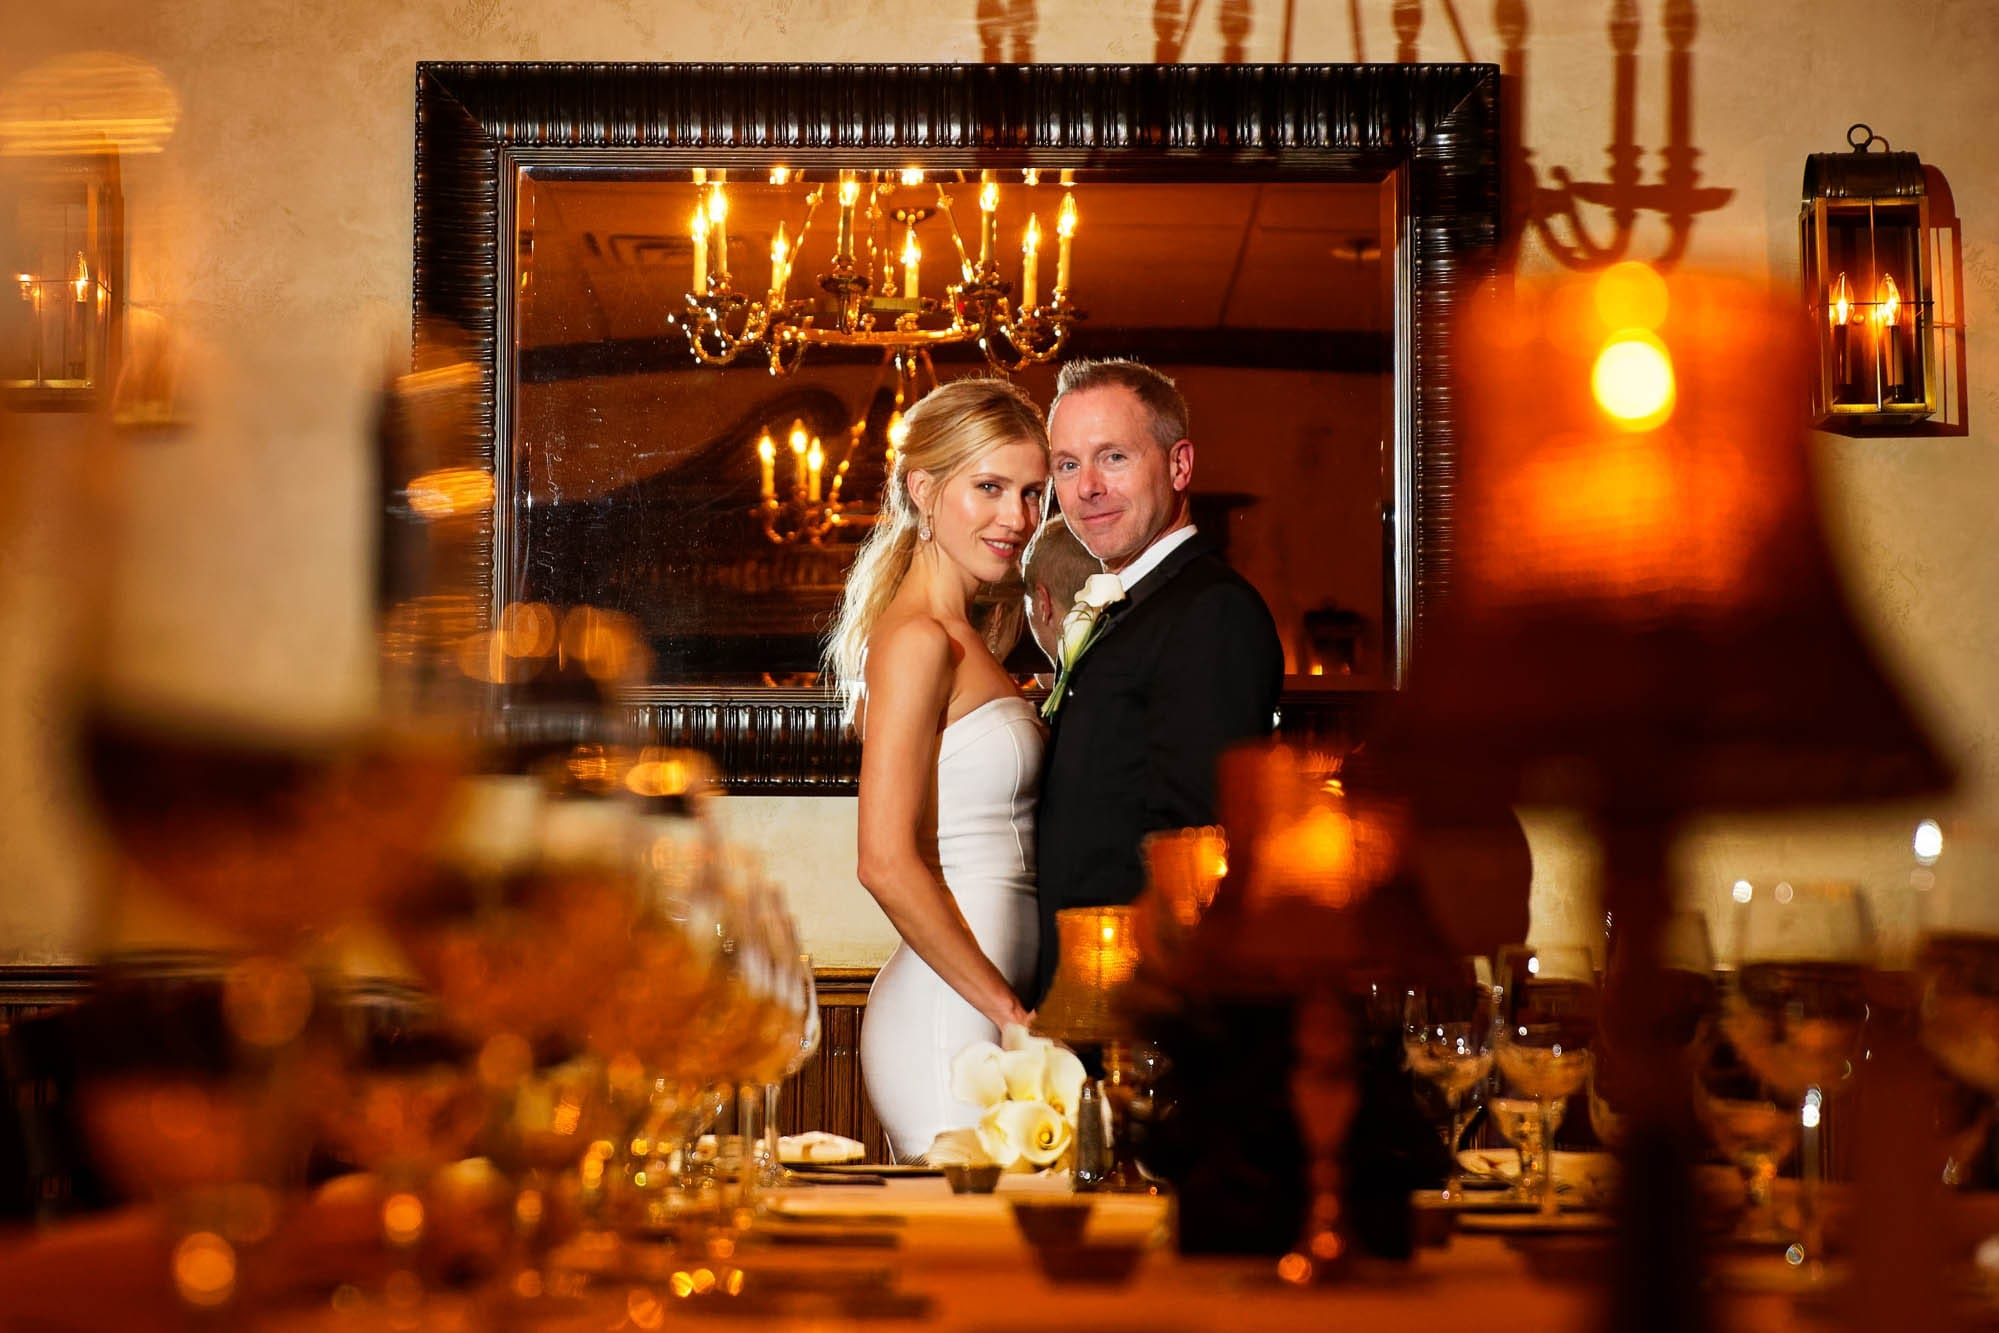 -staged-image-of-a-bride-and-groom-in-a-restaurant